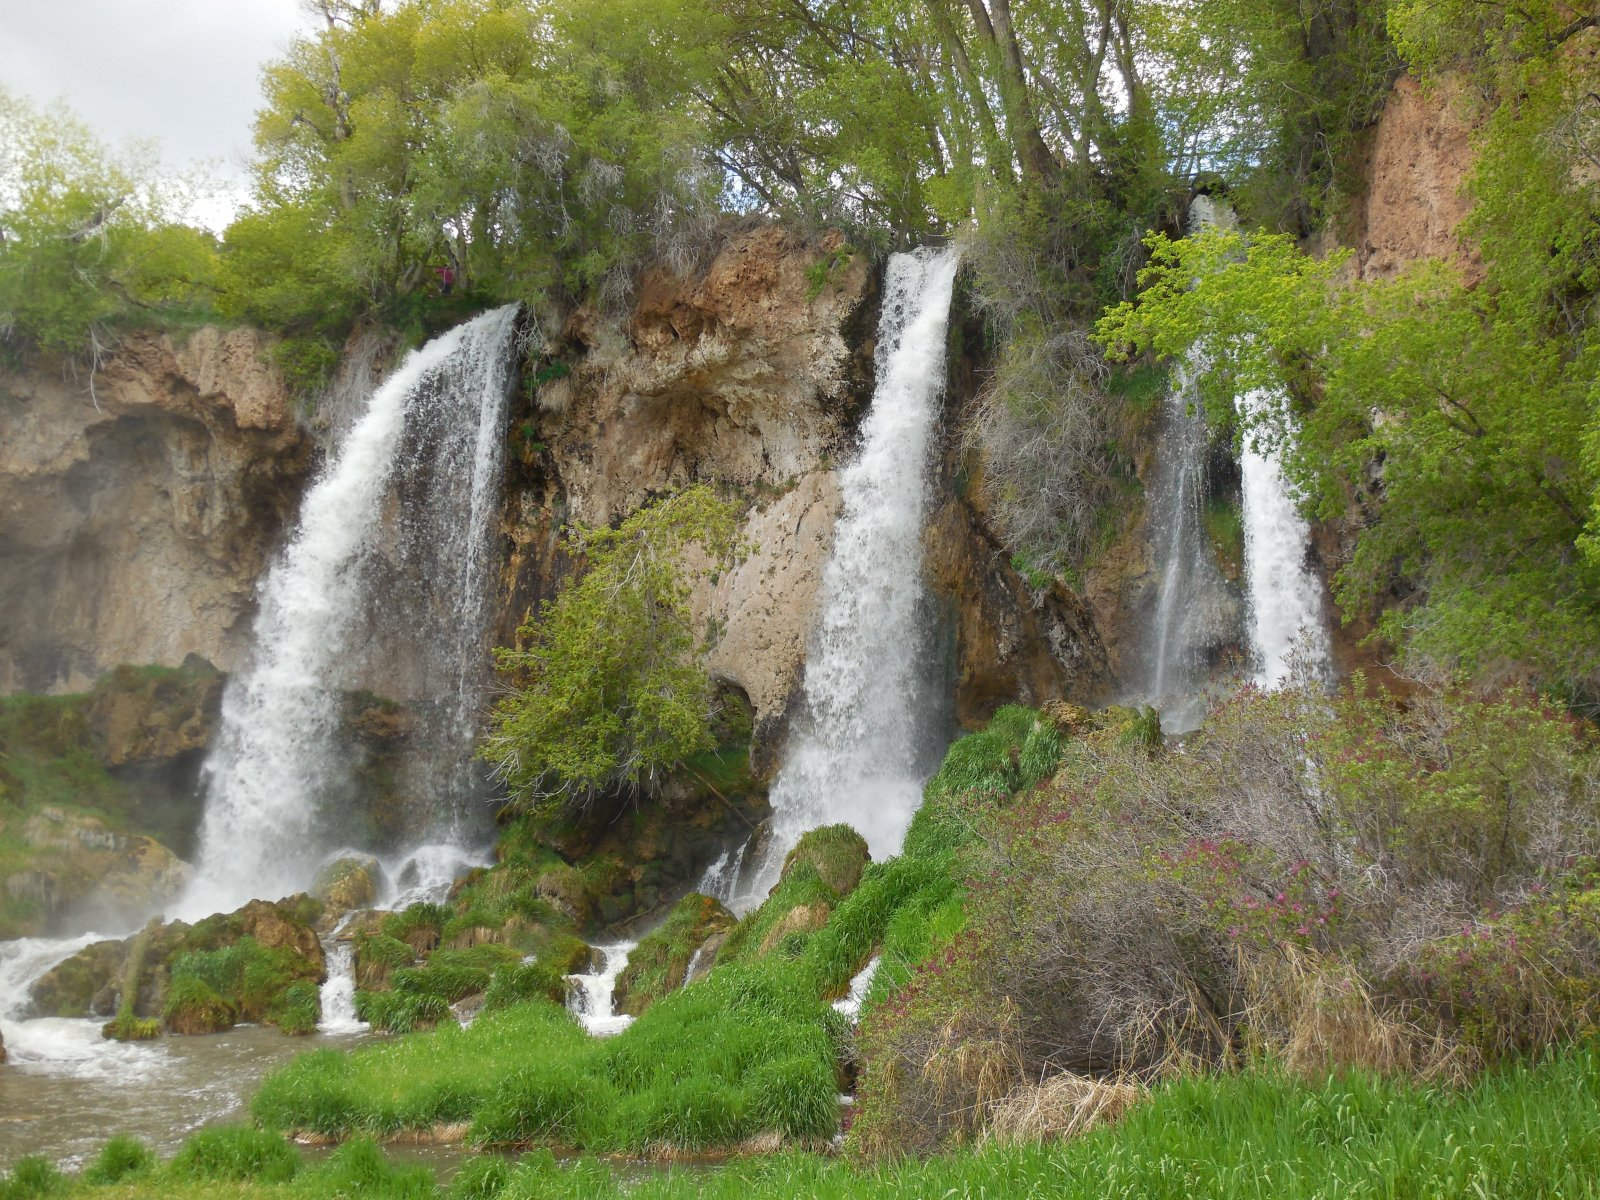 Click image for larger version  Name:1605 Rifle Falls 1.jpg Views:33 Size:575.5 KB ID:263911